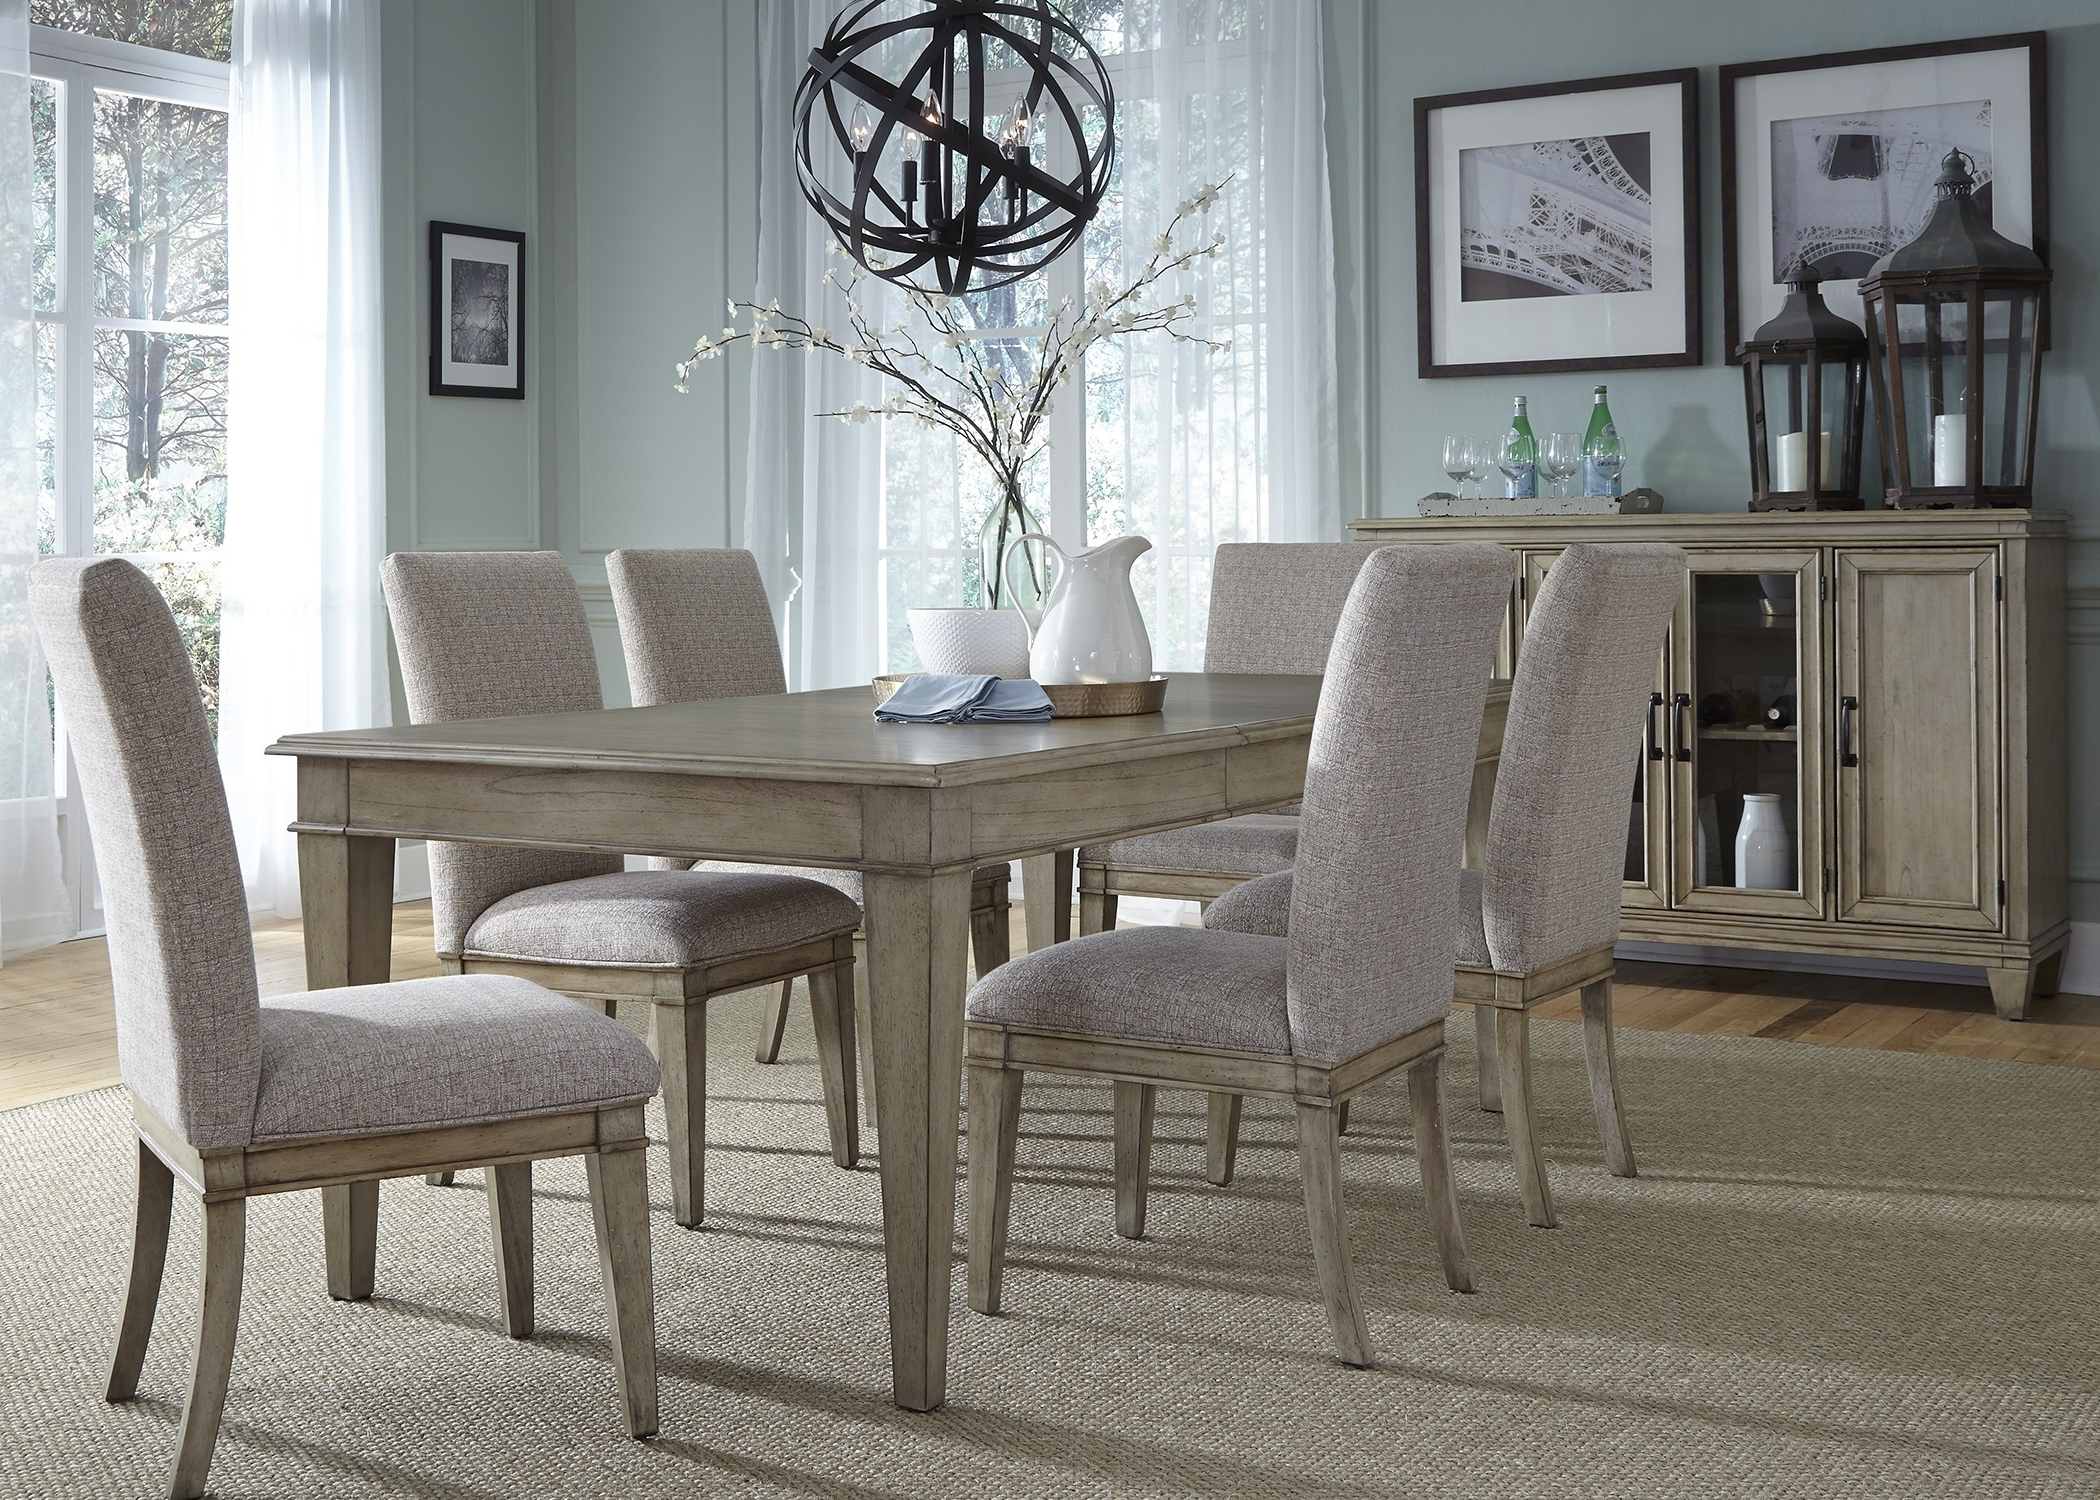 Most Up To Date Jaxon Grey 5 Piece Round Extension Dining Sets With Upholstered Chairs Pertaining To 18. Grayton Grove Extendable Dining Room Set From Liberty Coleman (Gallery 16 of 25)